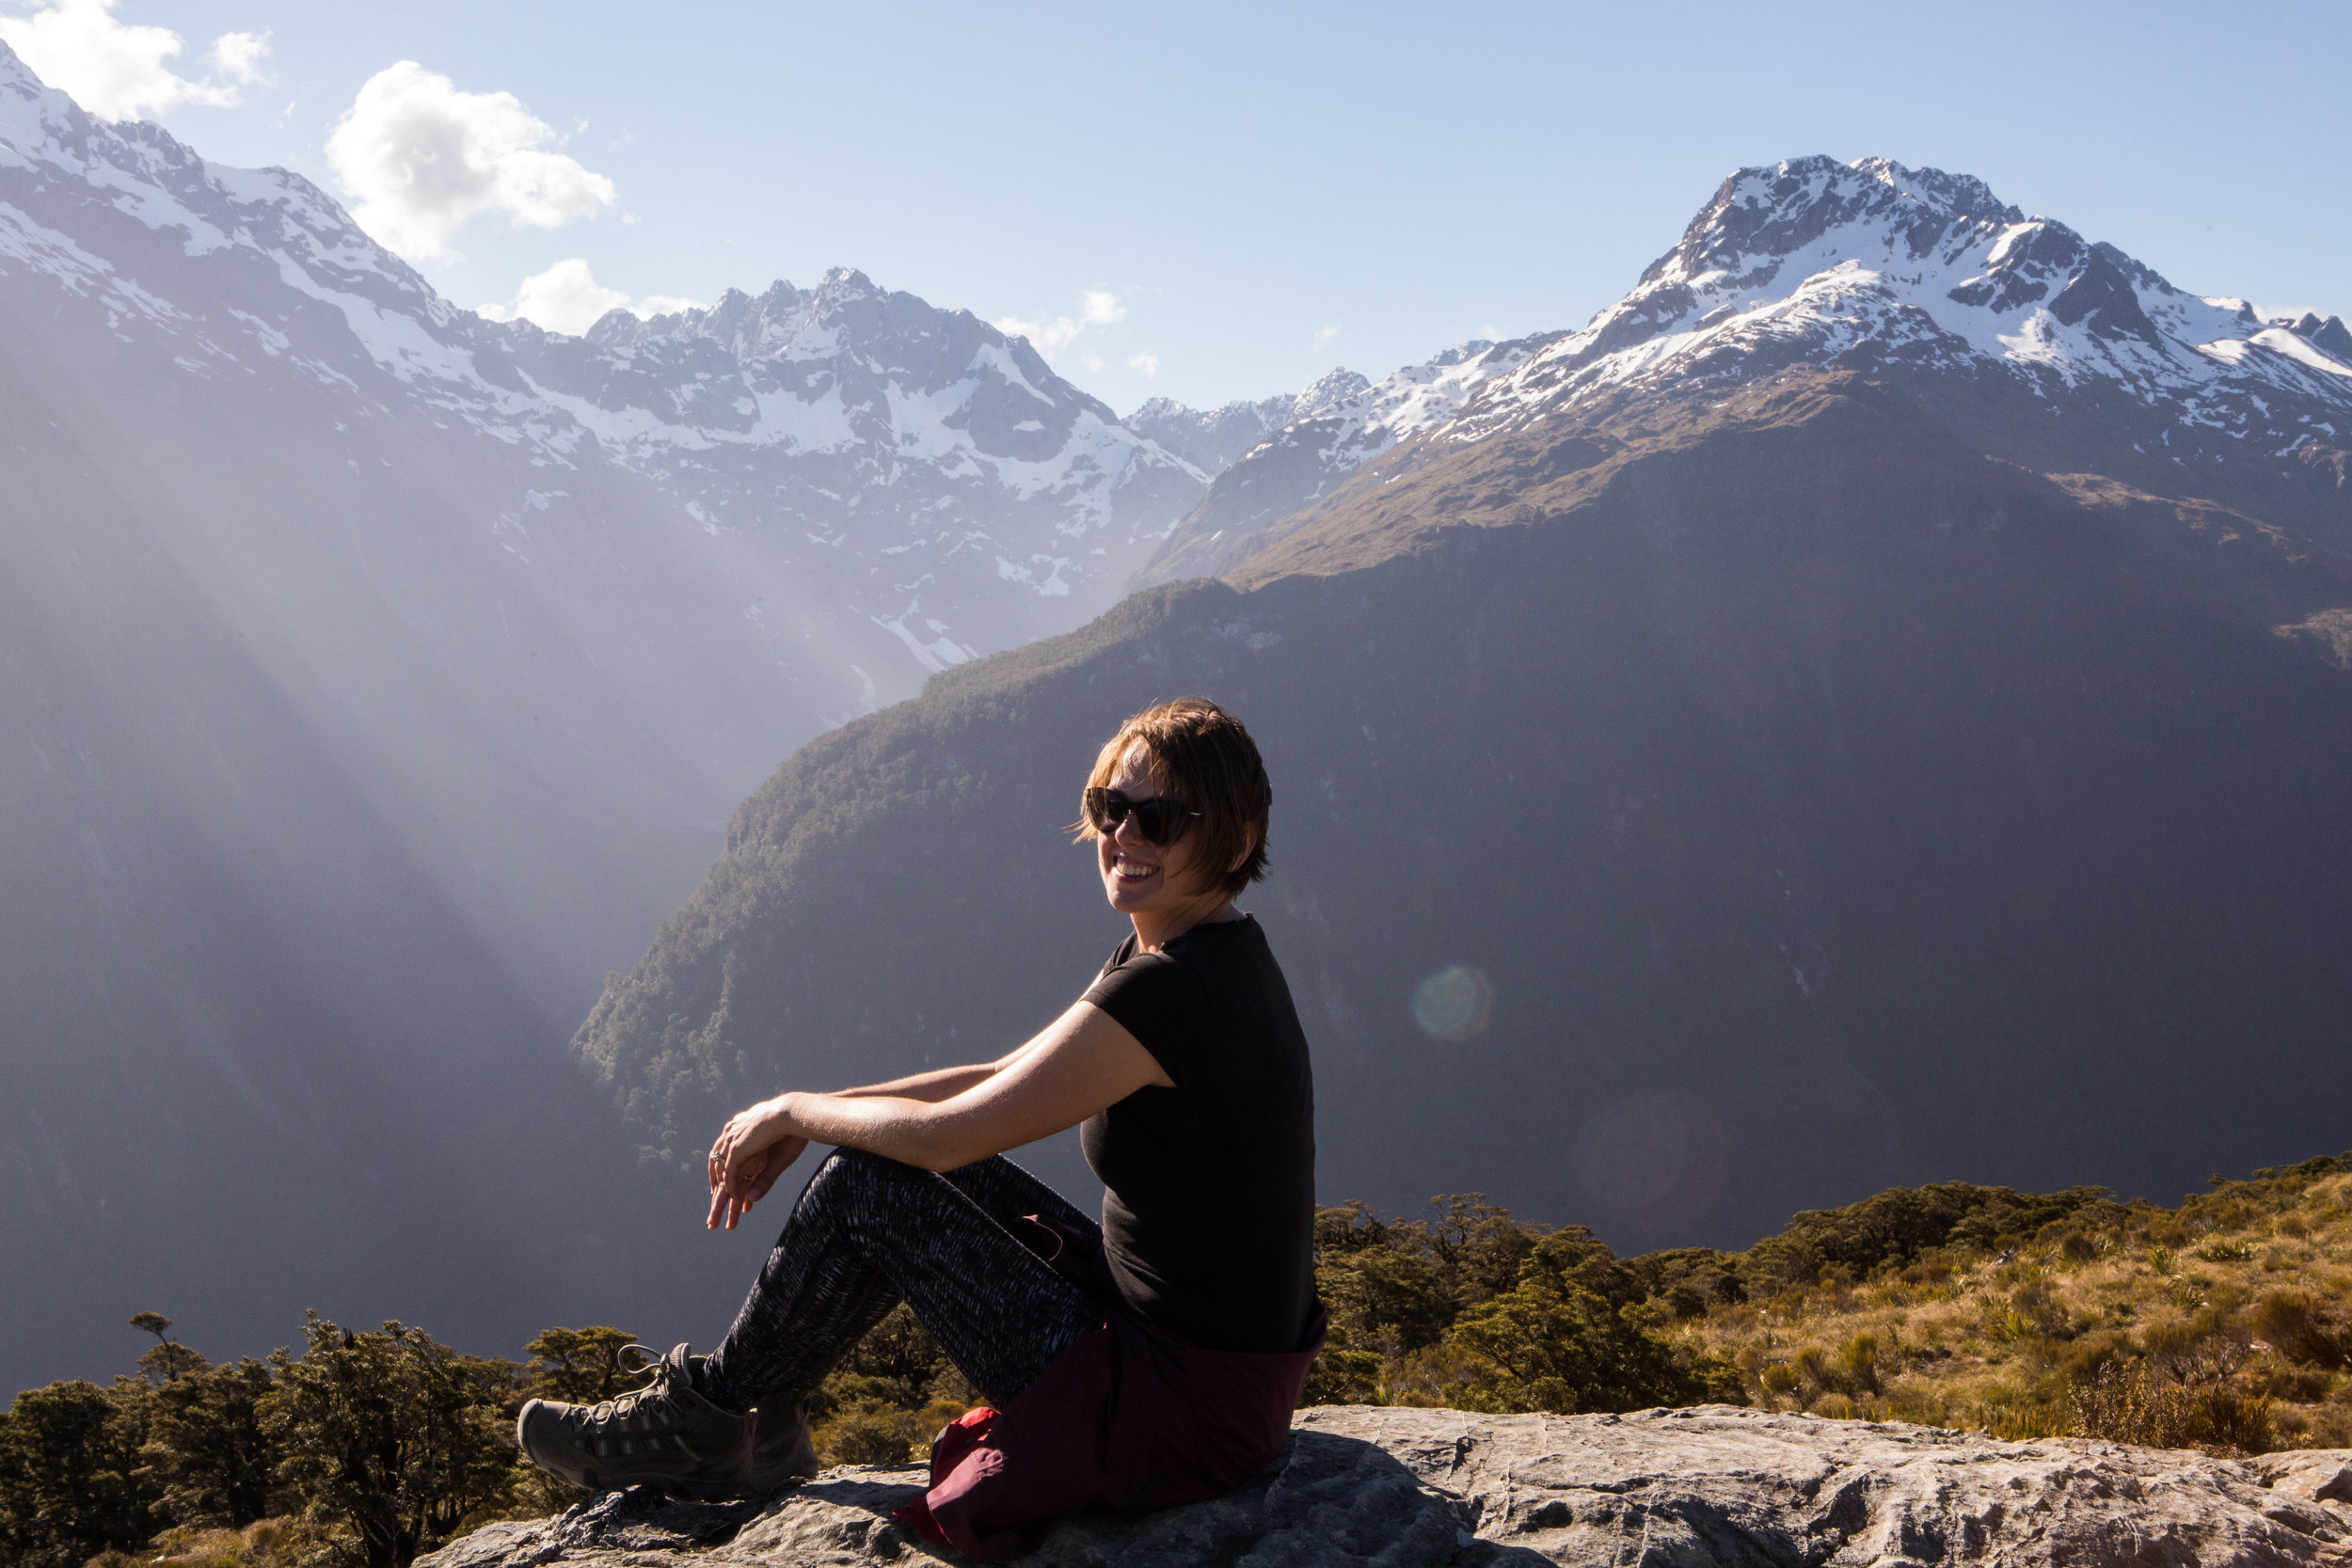 christina on mountain in new zealand